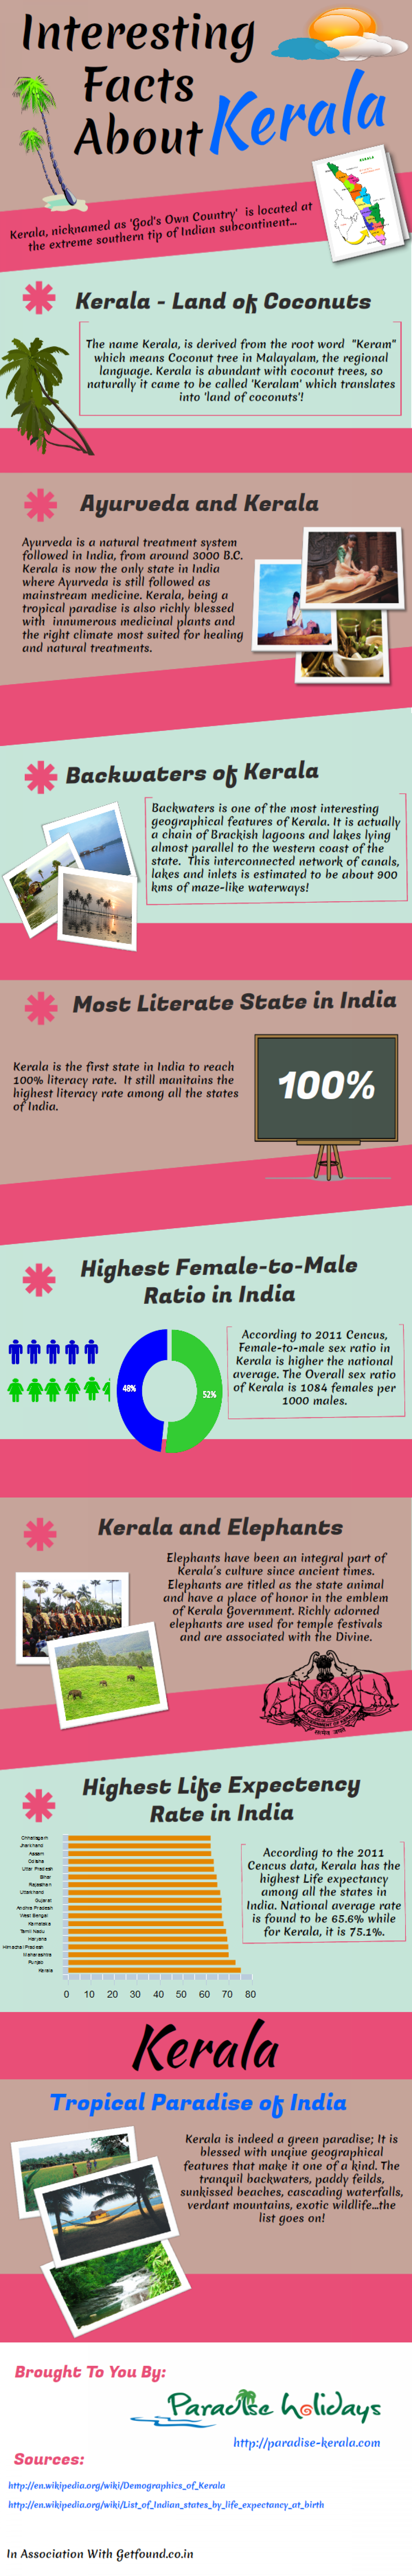 7 Interesting Facts About Kerala Infographic